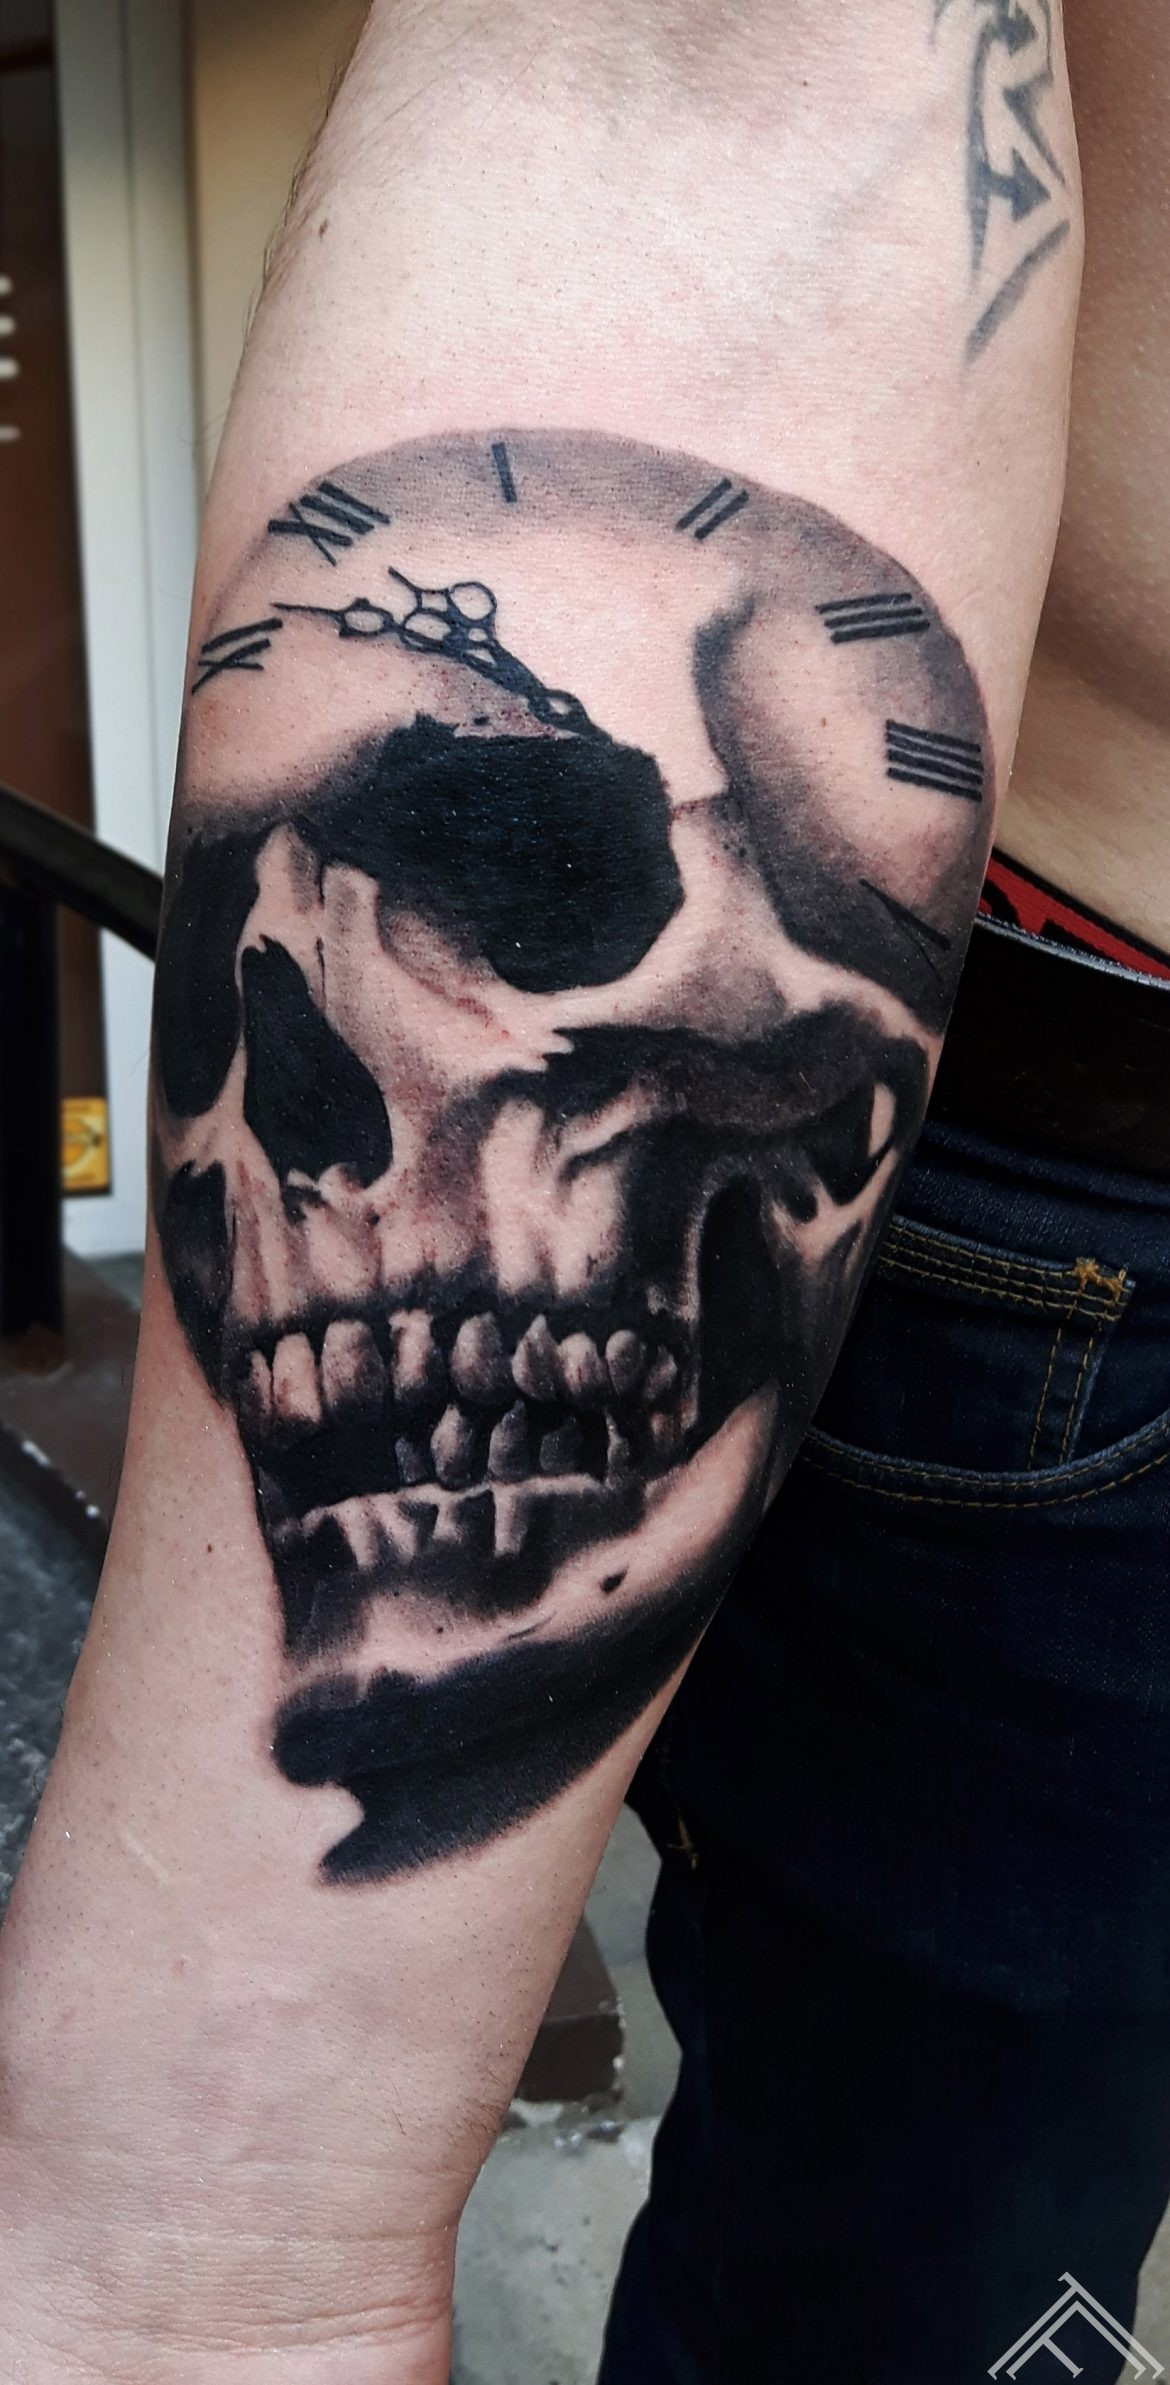 skull-abstract-sketch-watercolor-tattoo-tetovejums-krasains-skice-udenskrasa-riga-tattoofrequency-johnlogan